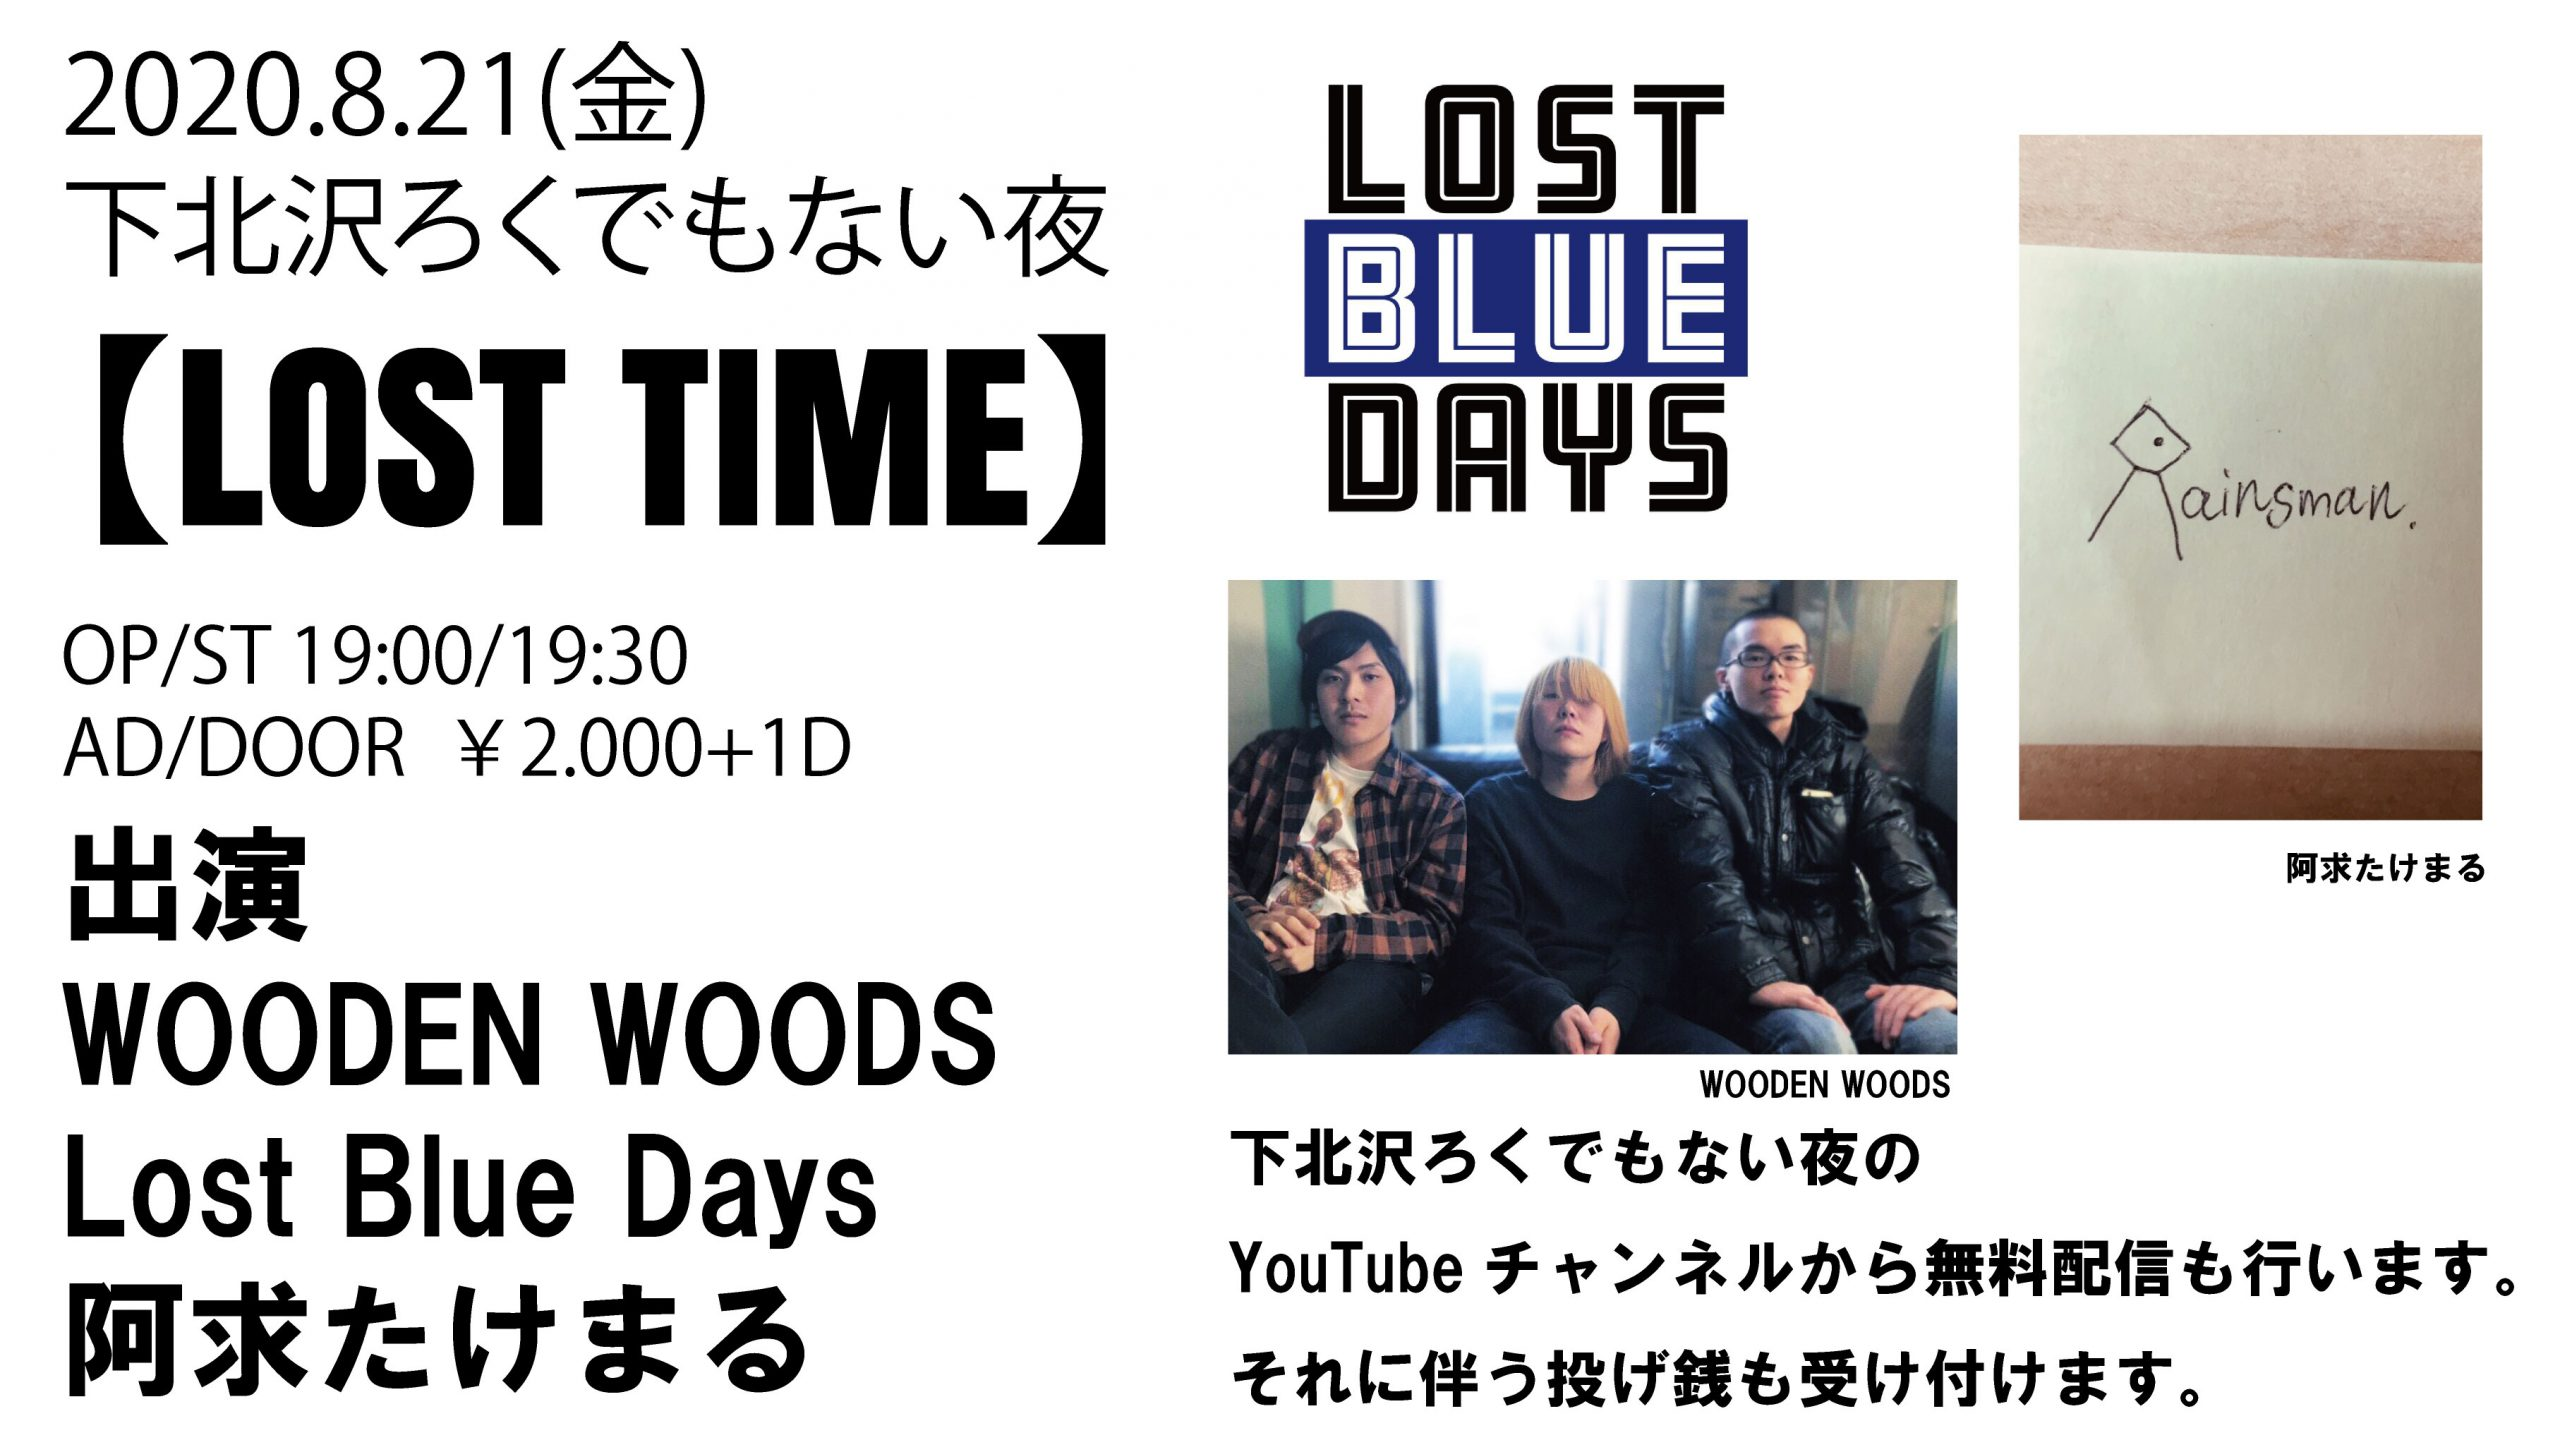 【LOST TIME】